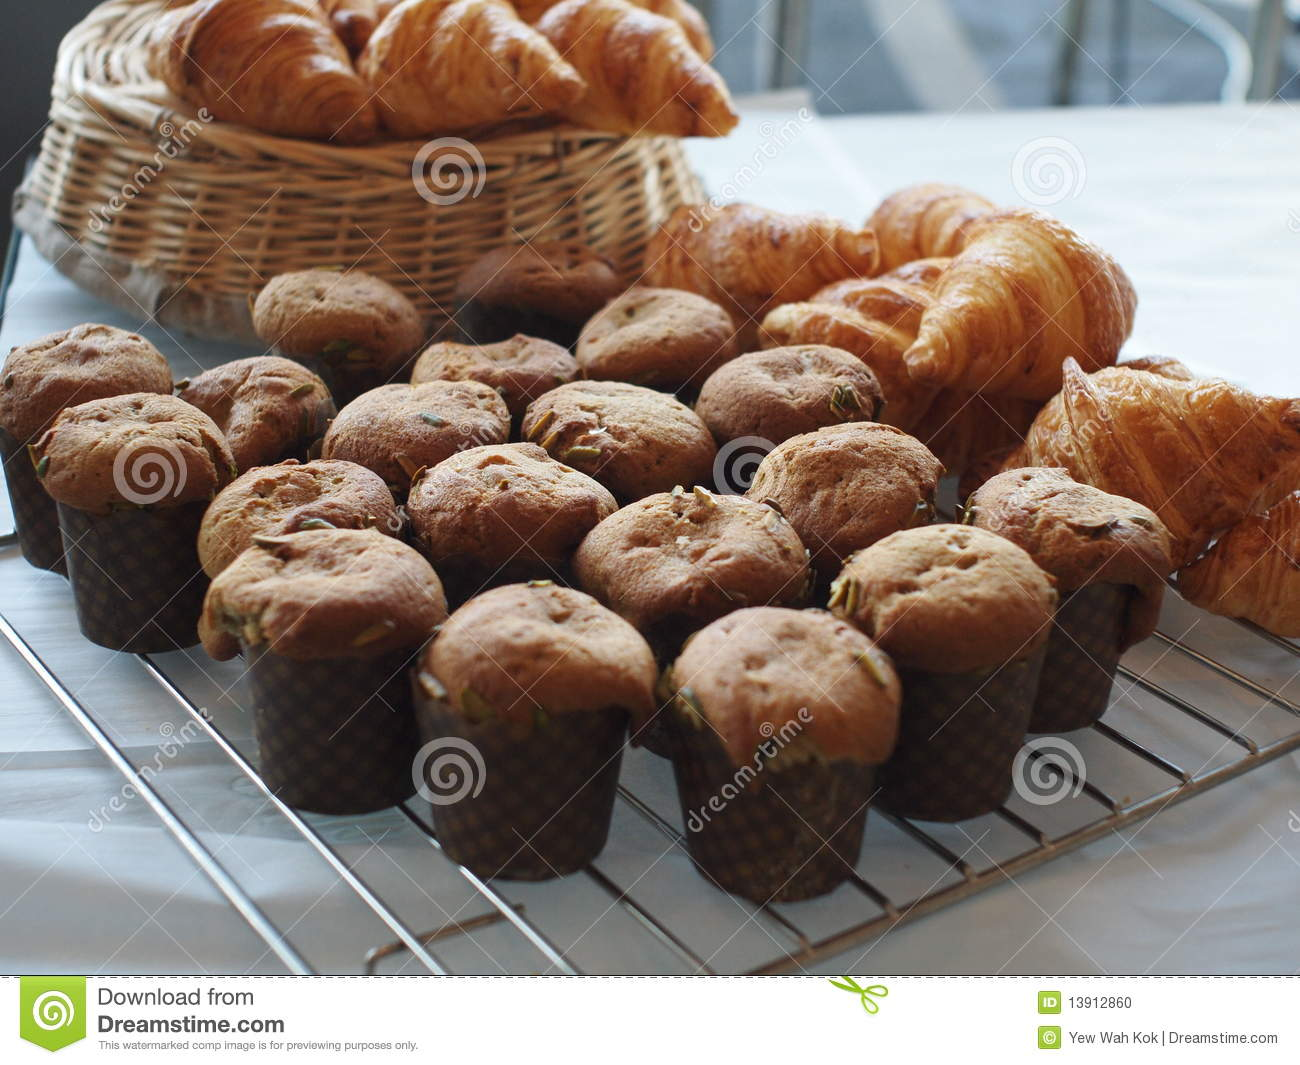 Muffin and pastry